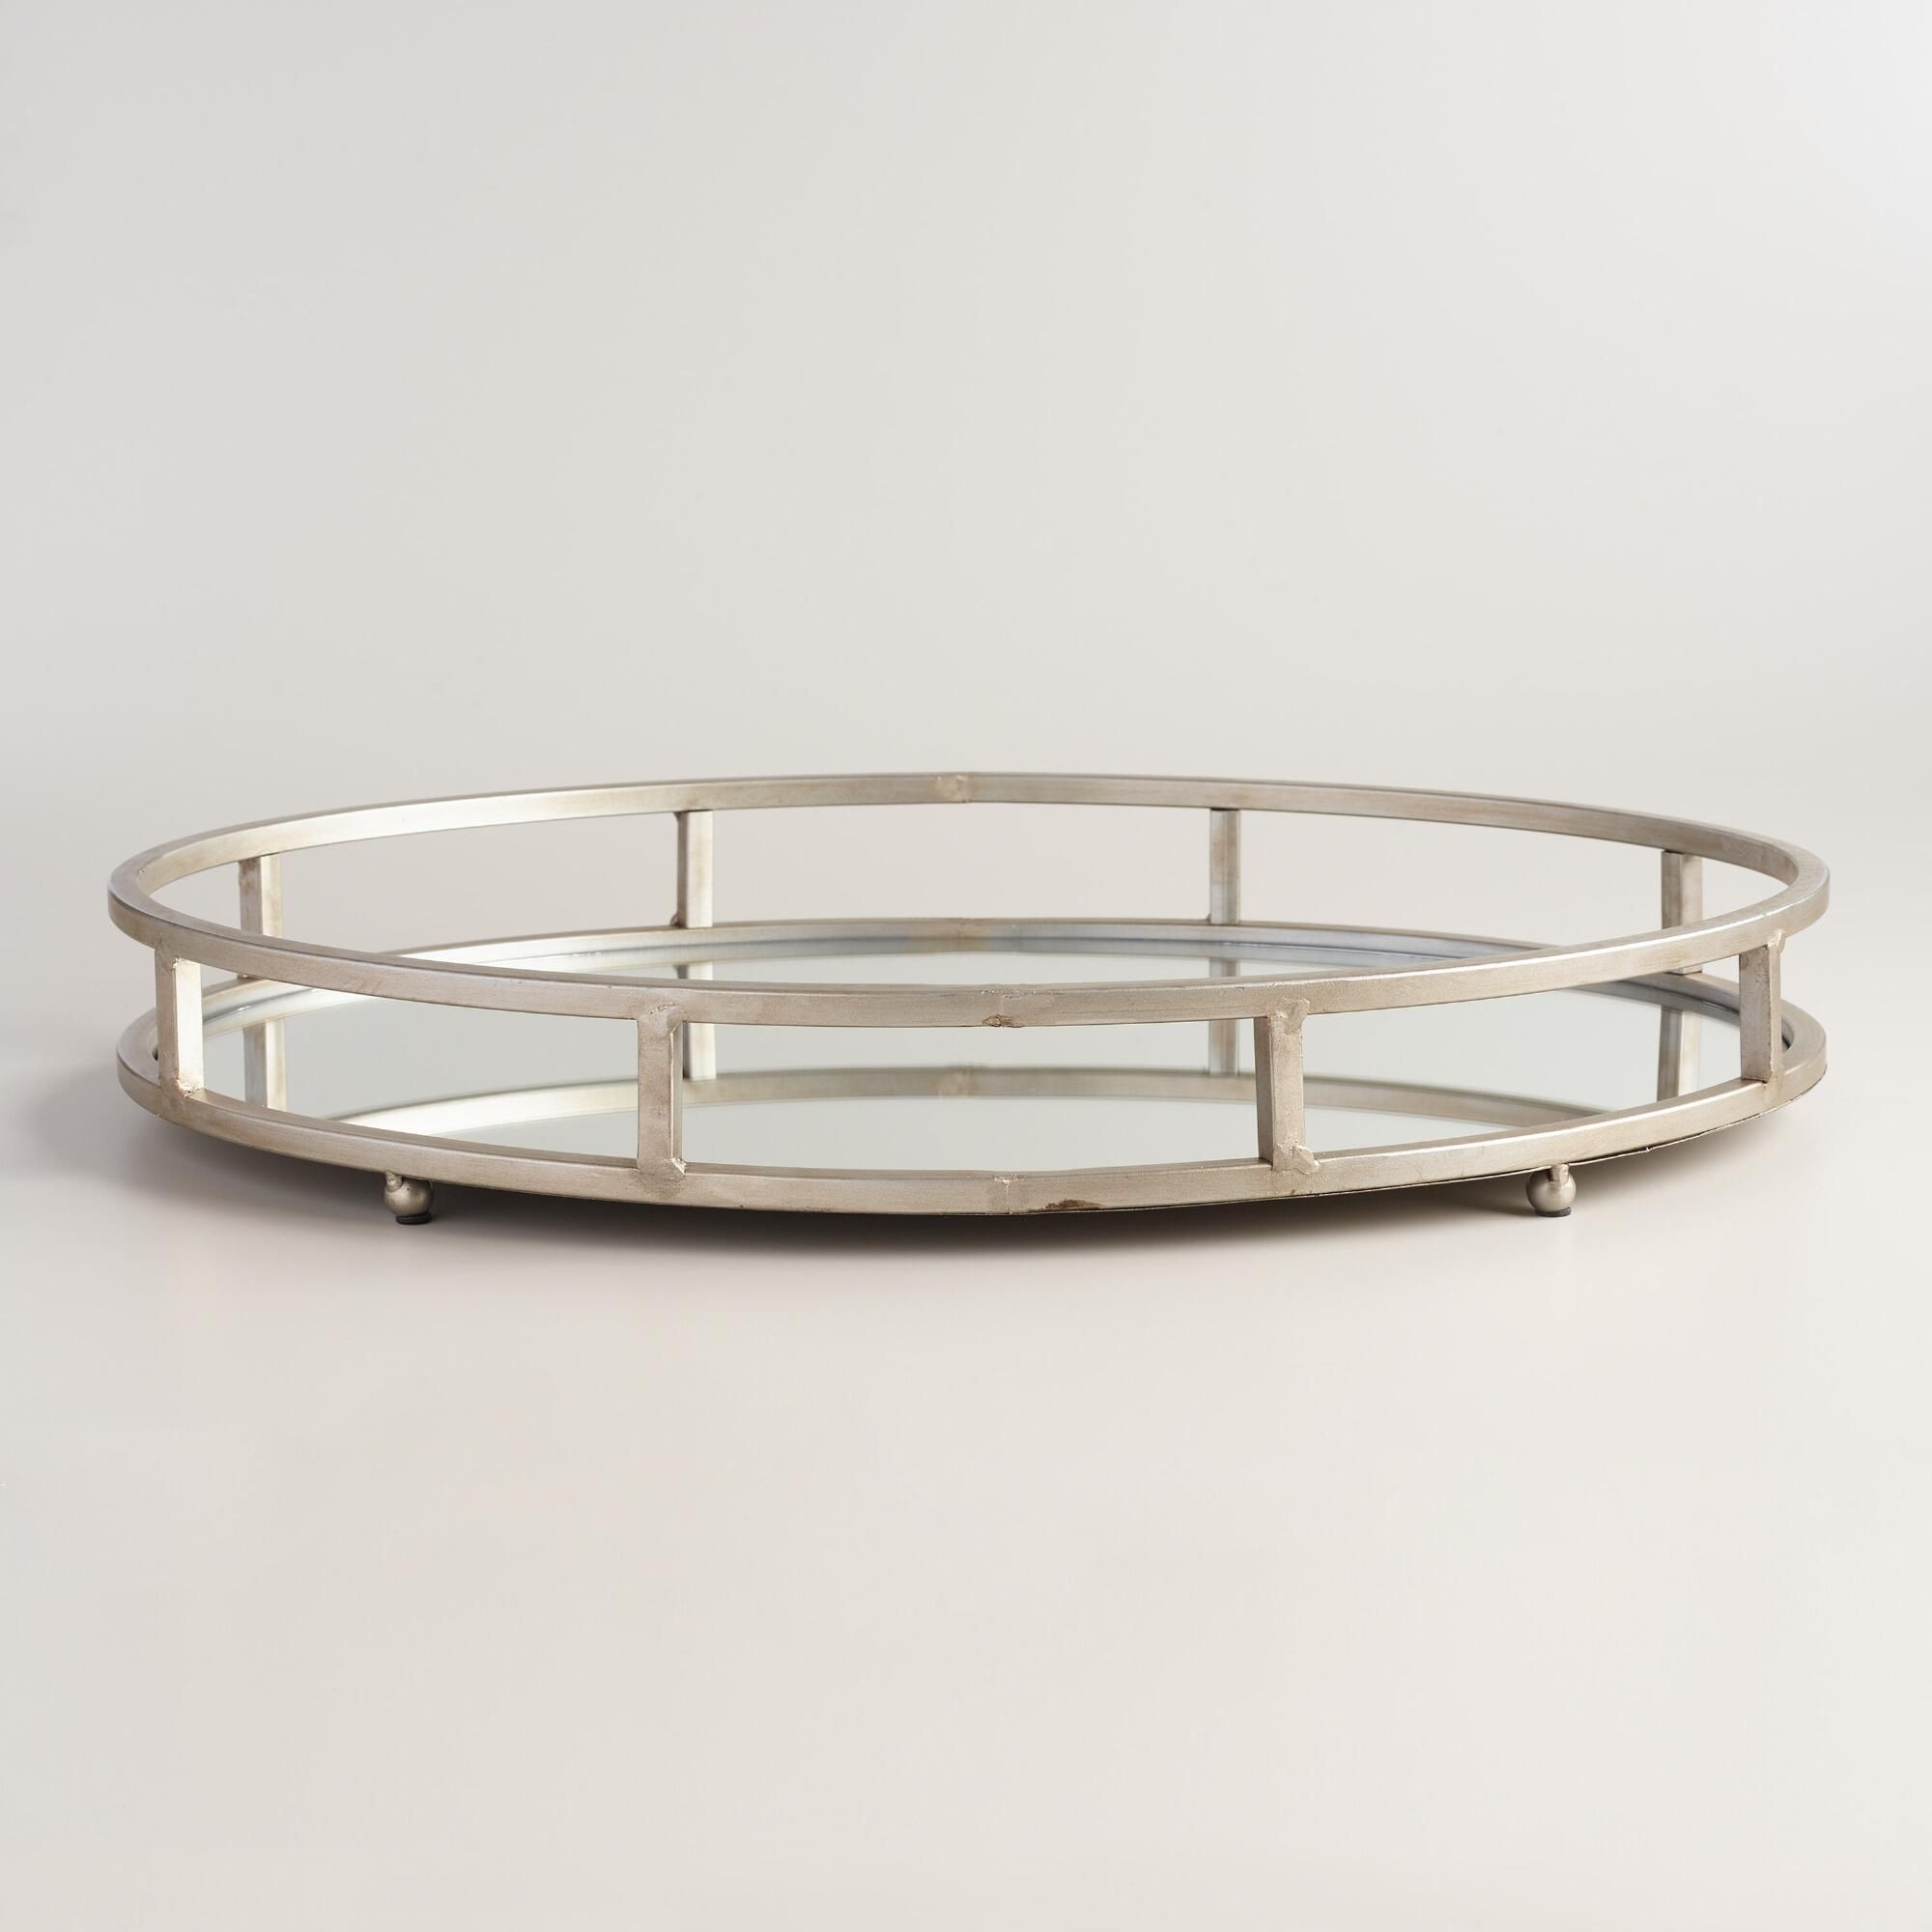 40 Silver Mirrored Round Serving Tray World Market Mirrored Serving Tray Mirror Tray Tray